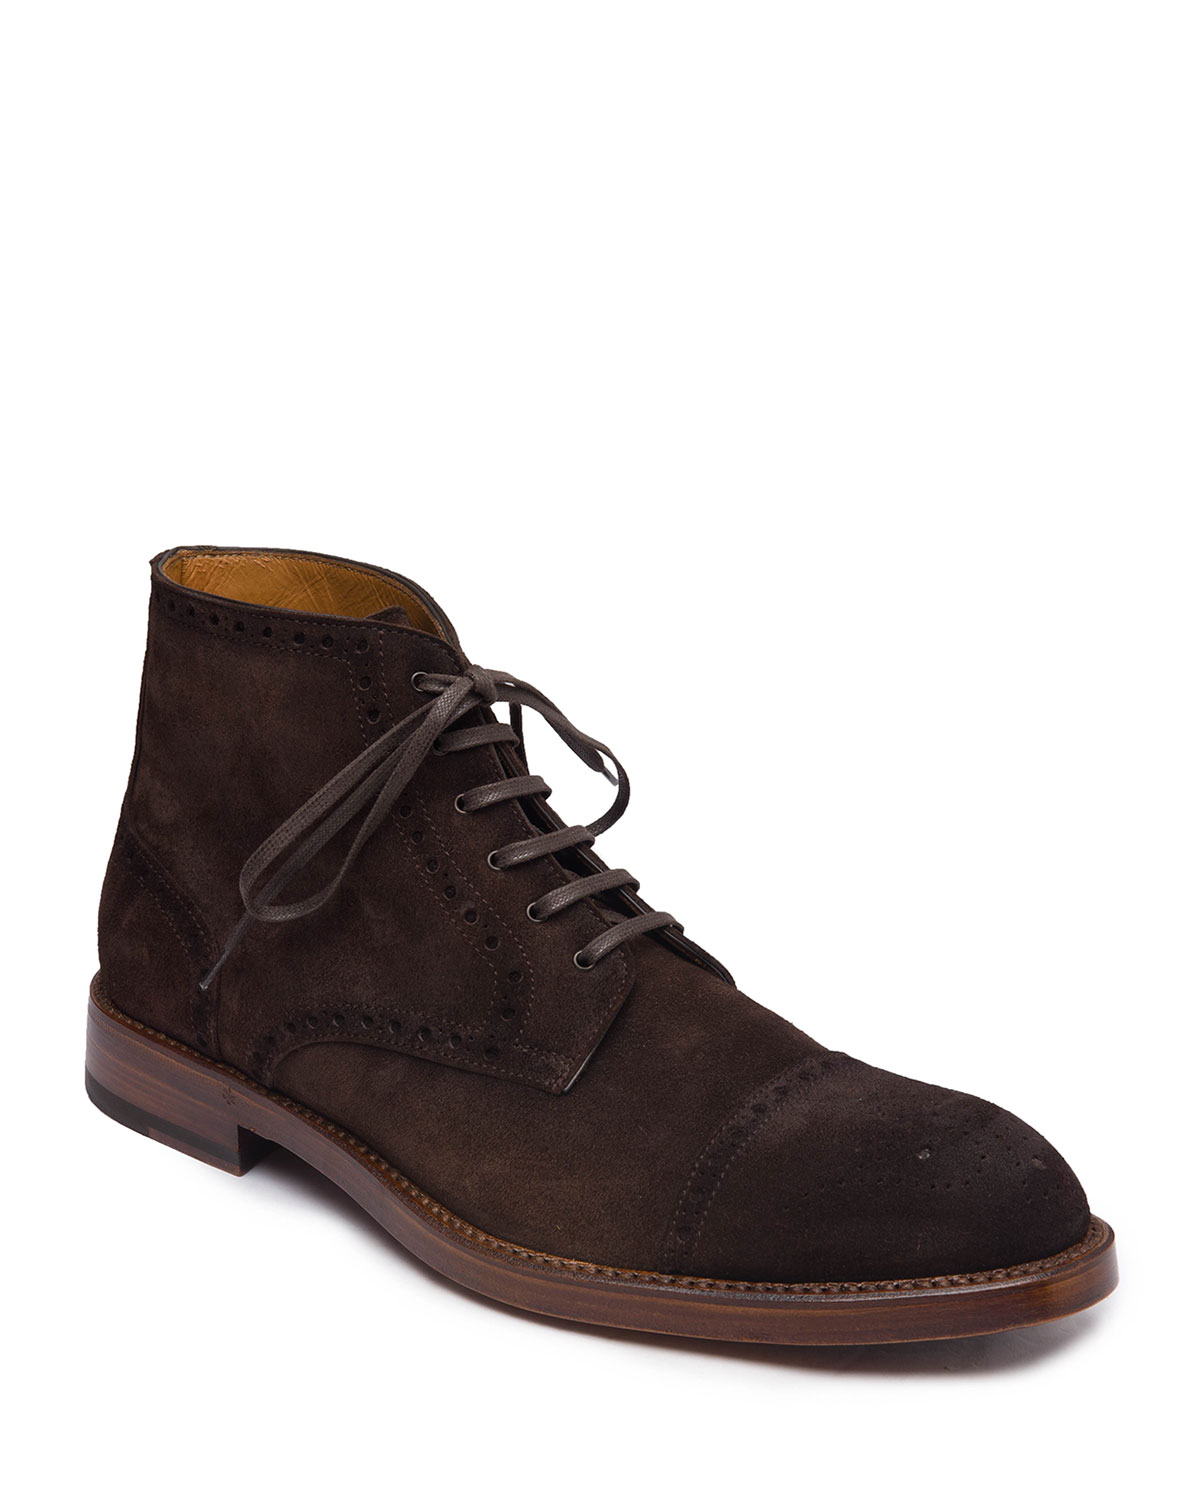 Men's Octavio Brogue Suede Boots